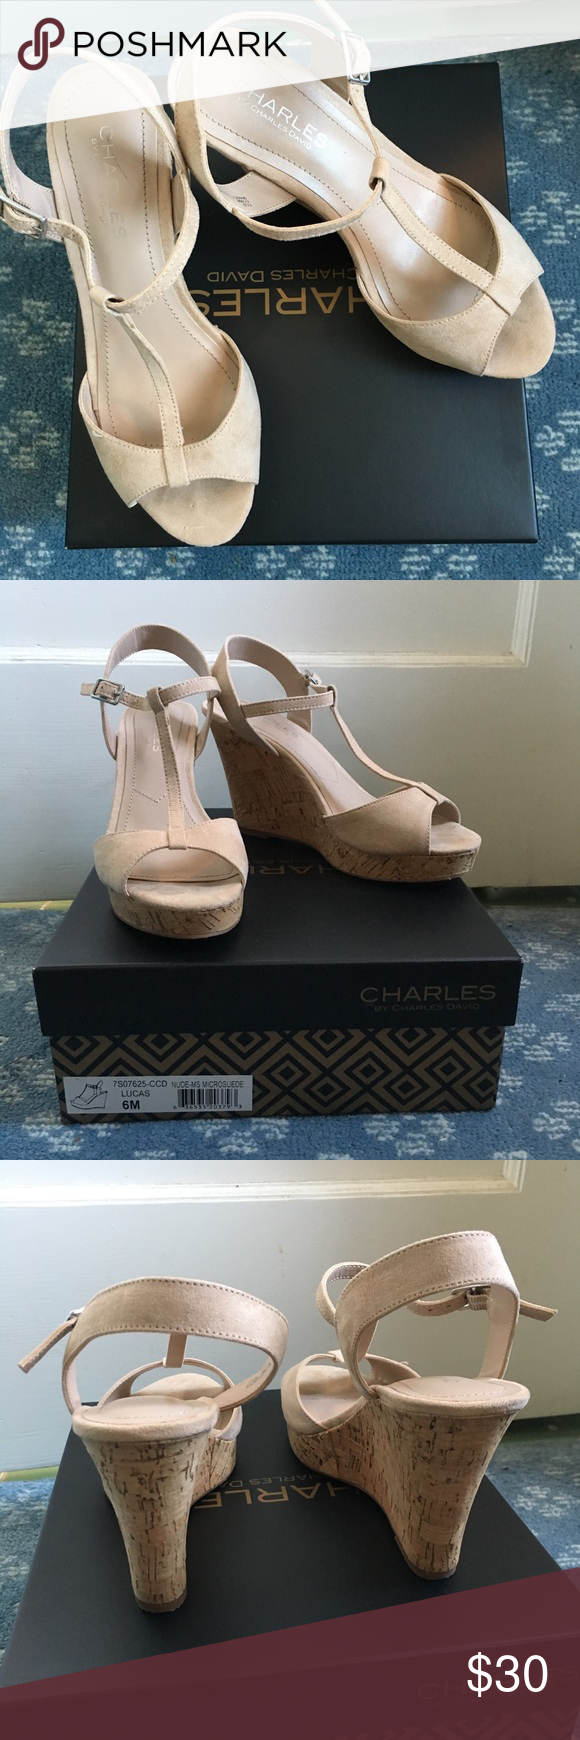 """f82ef254d750 Charles by Charles David wedge heel Lucas sandal Only worn once for a  wedding. They are a nude suede sandal with a 4"""" wedge heel."""